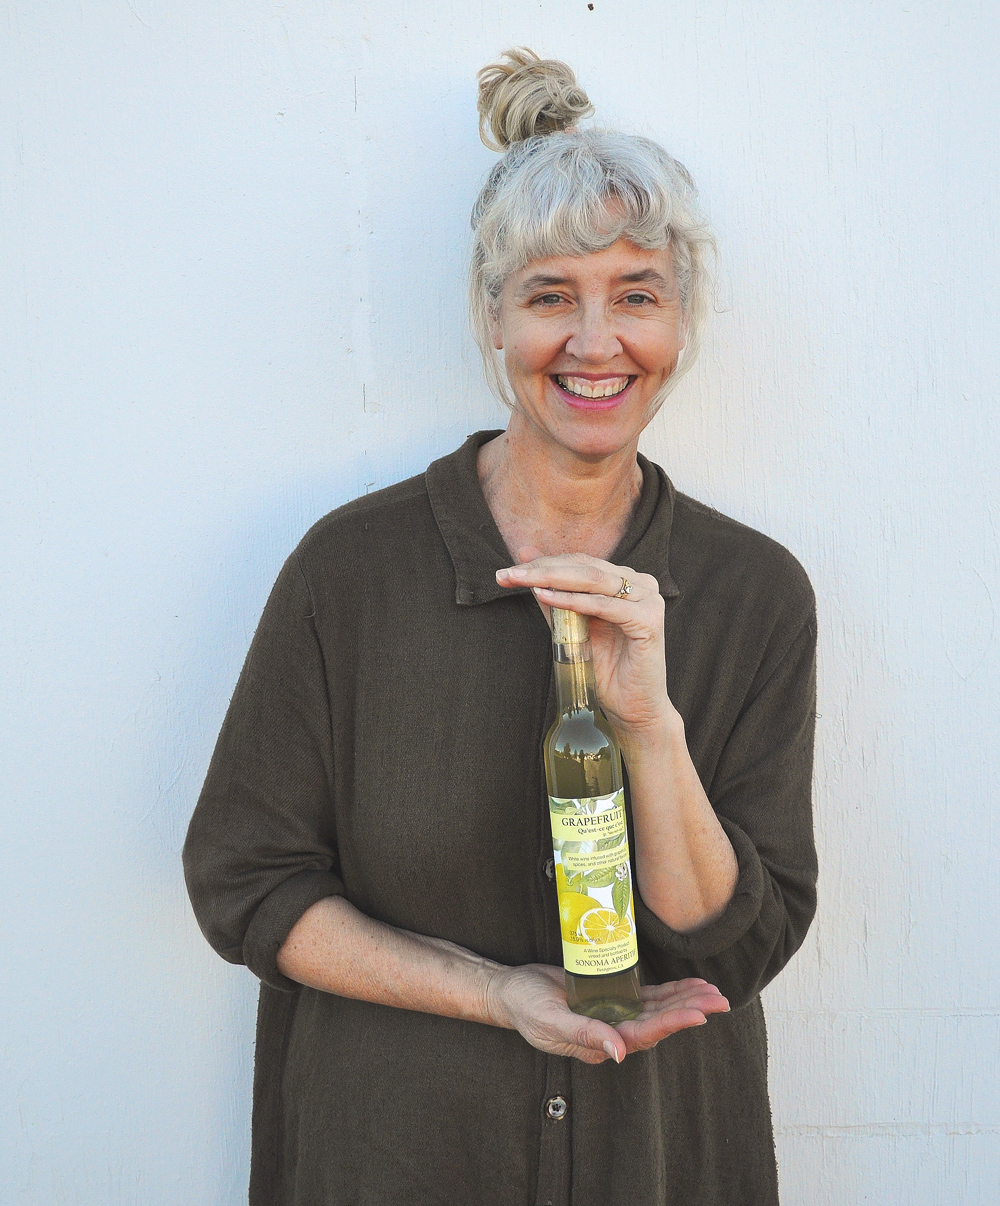 Laura Hagar-Rush is making lovely aperitifs in Sonoma County from heirloom fruit like bergamot, Buddha's hand, yali pear and Chinese quince grown around the Bay Area.